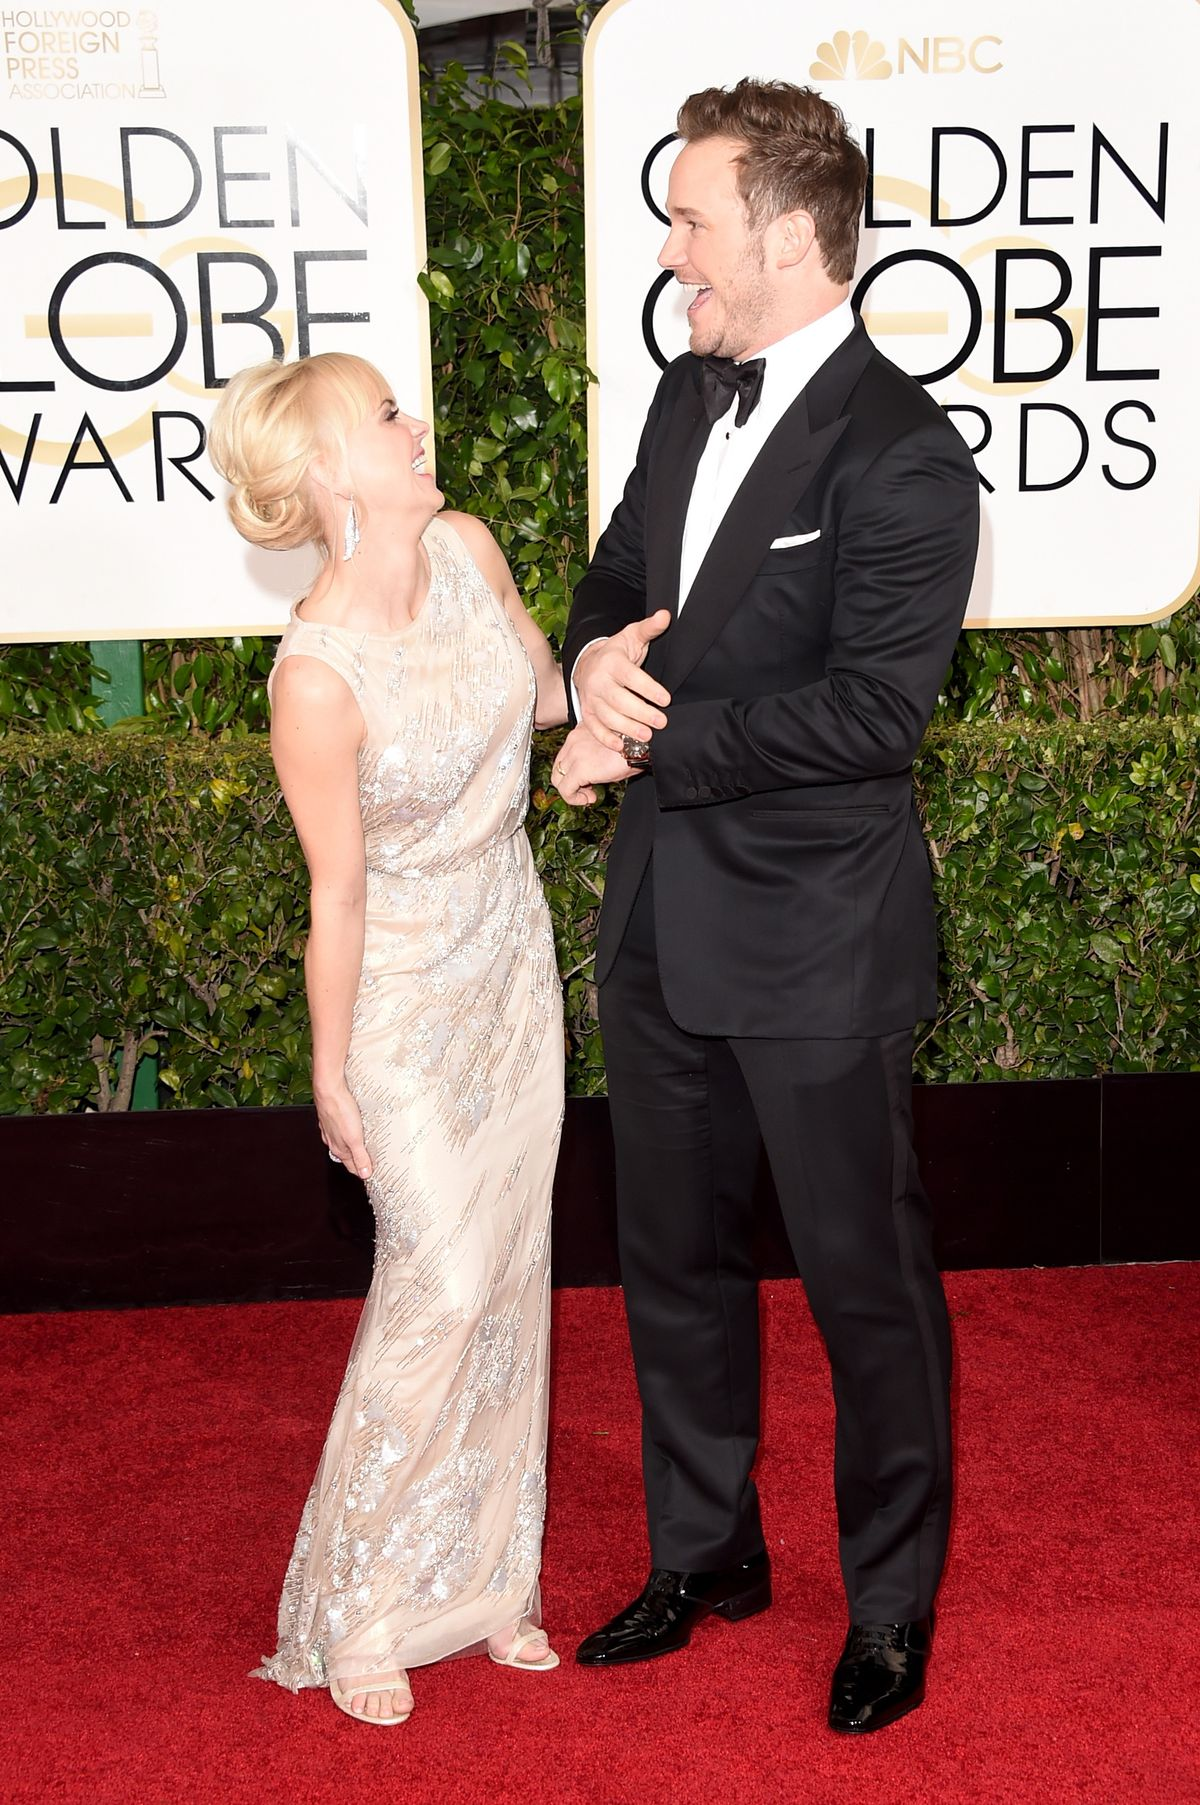 Chris Pratt and Anna Faris at 2015 Golden Globes